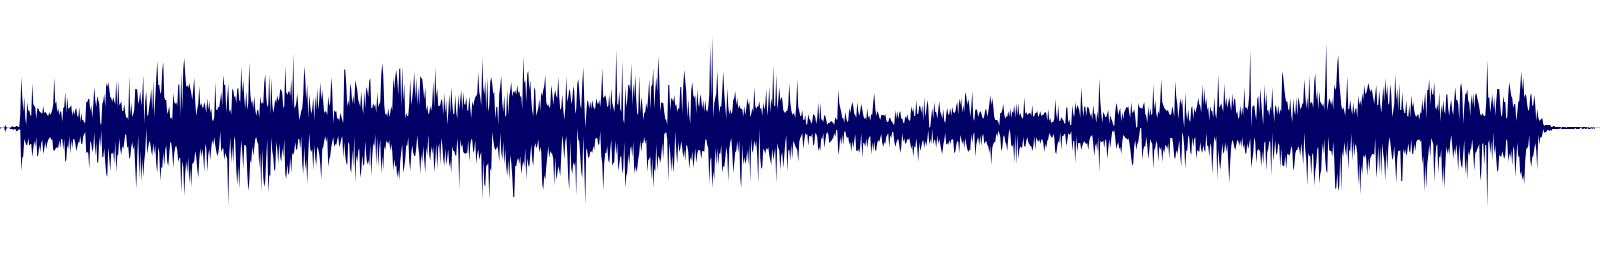 waveform of track #137804